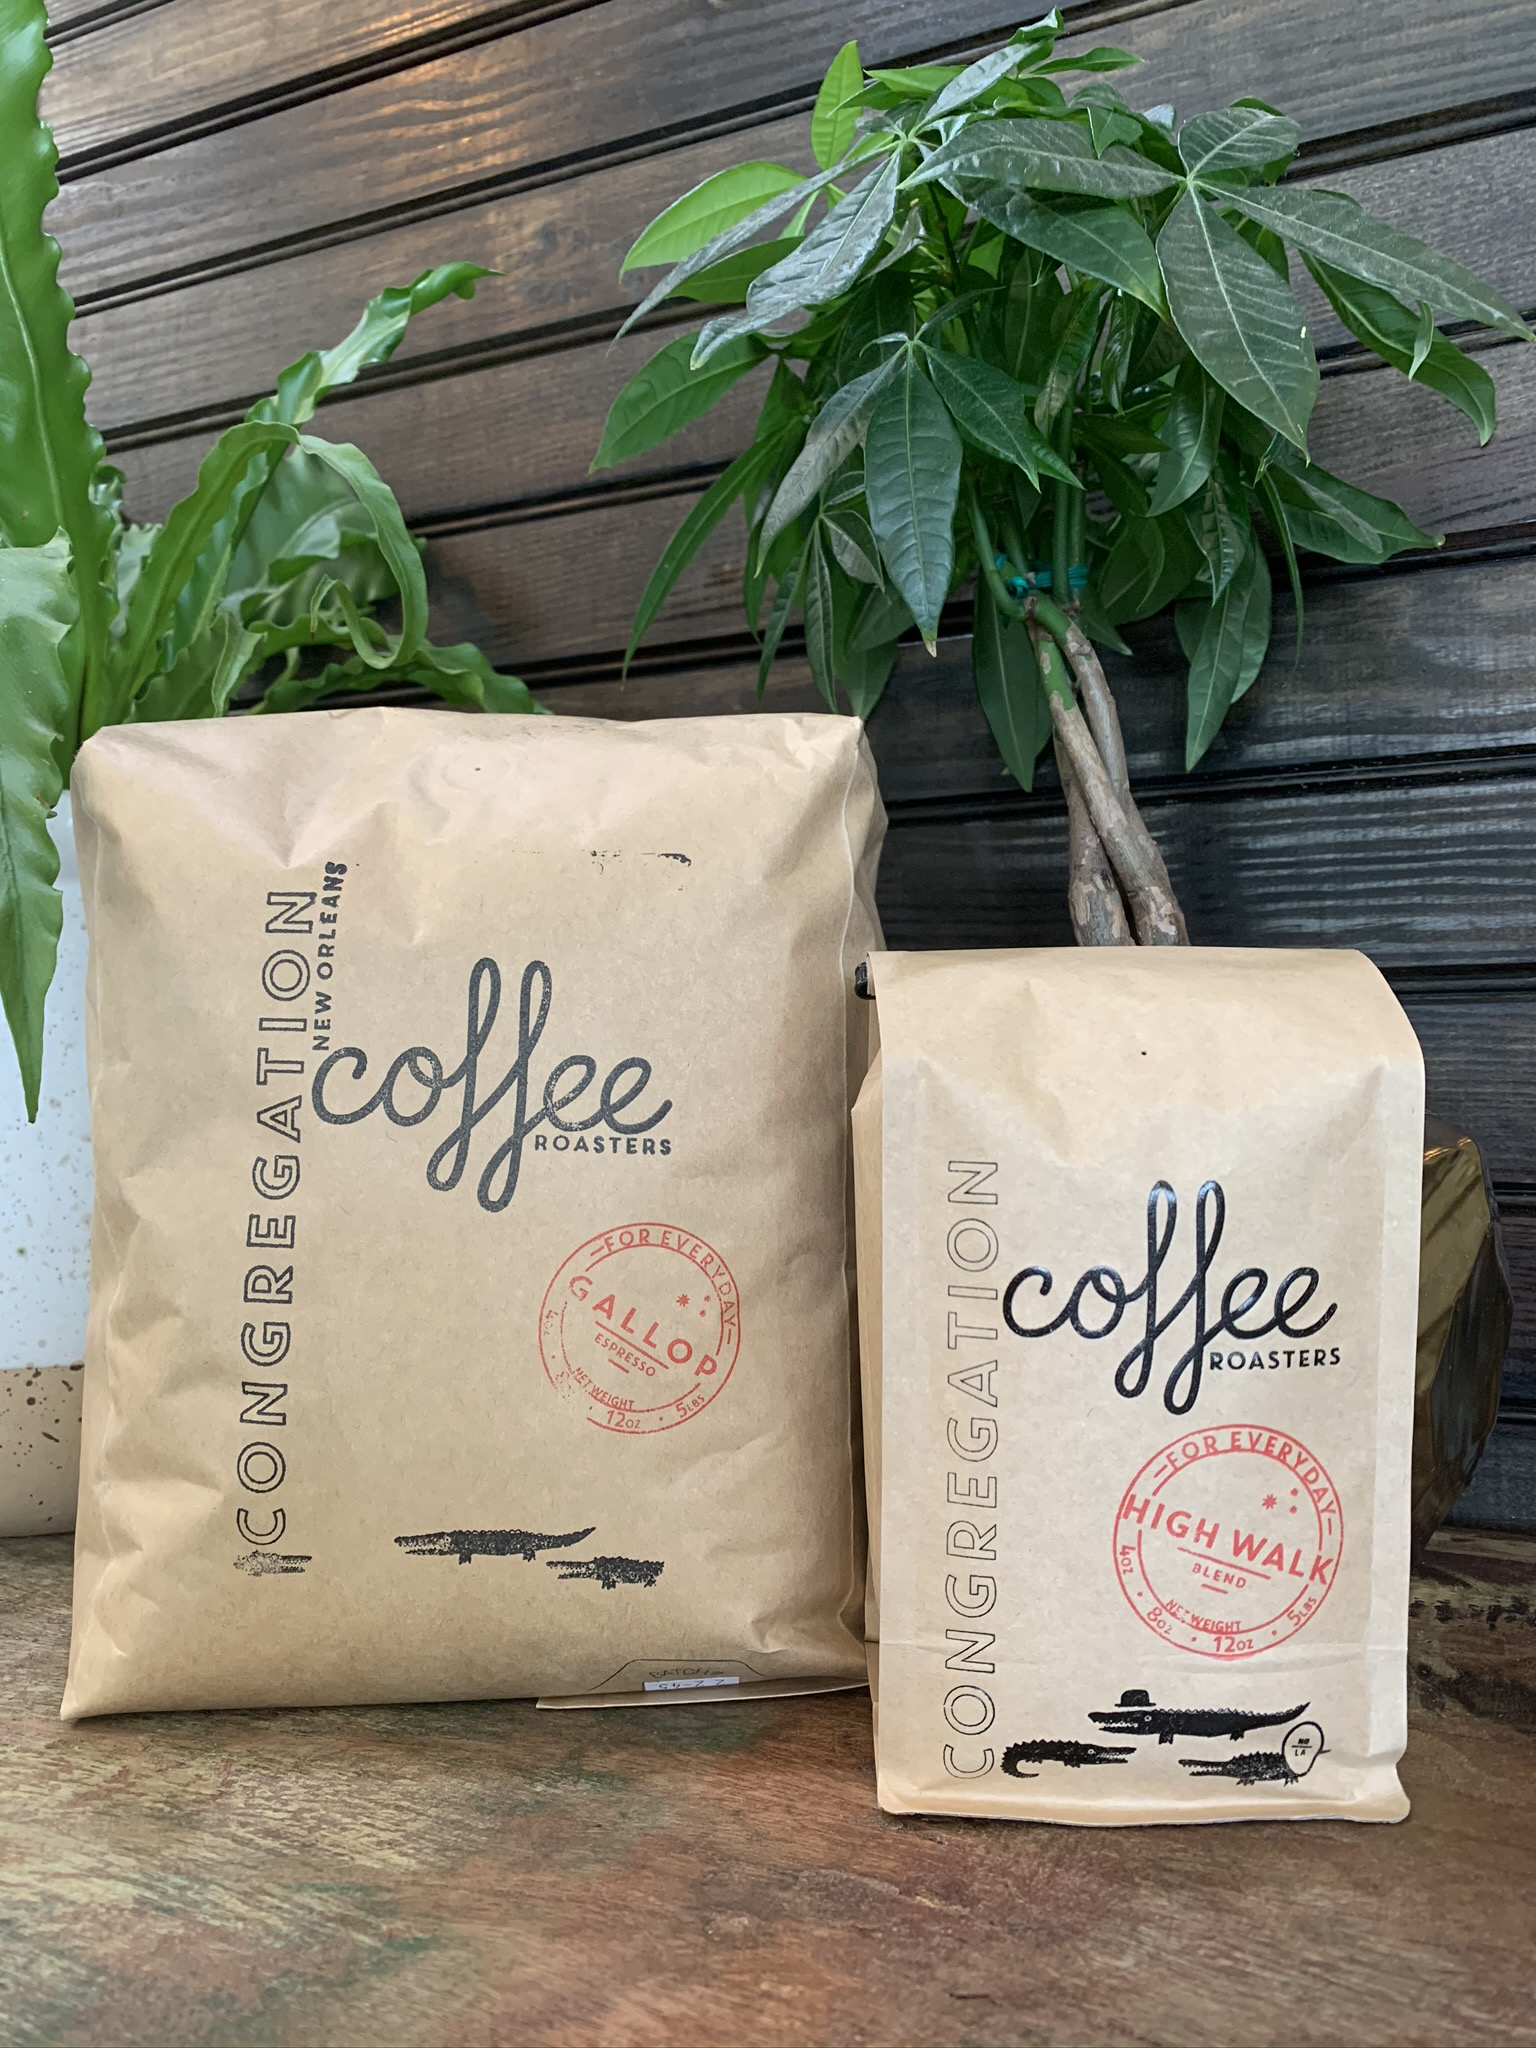 Retail Coffee from Congregation Coffee available at Old Road Coffee